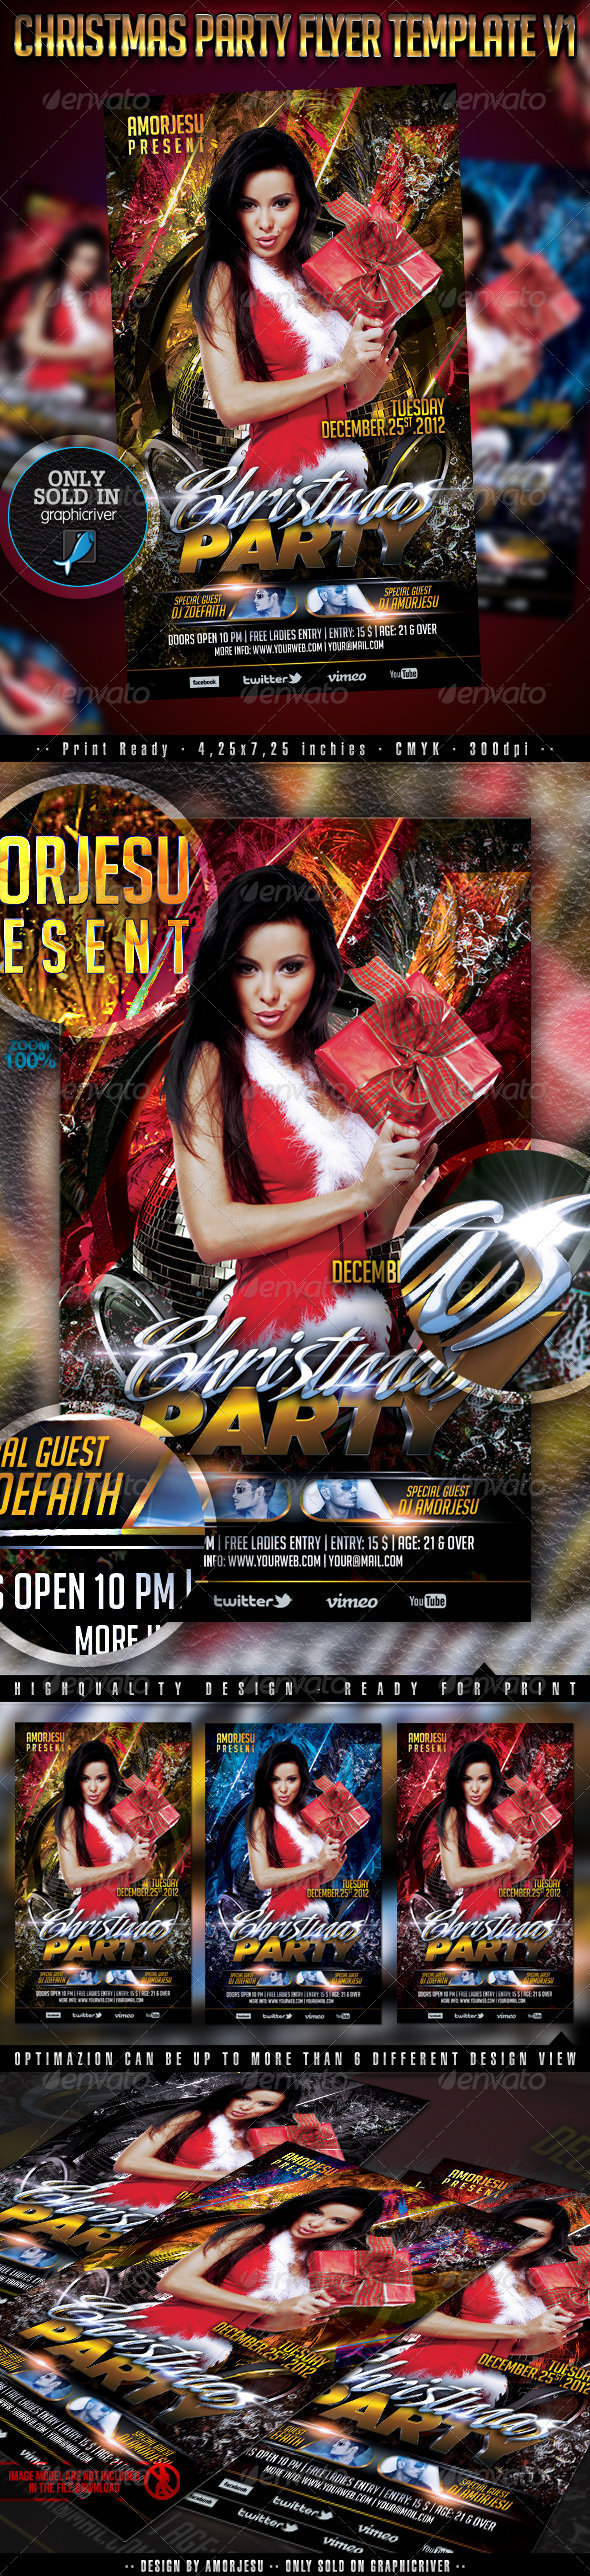 Christmas Party Flyer Template V1 - Events Flyers